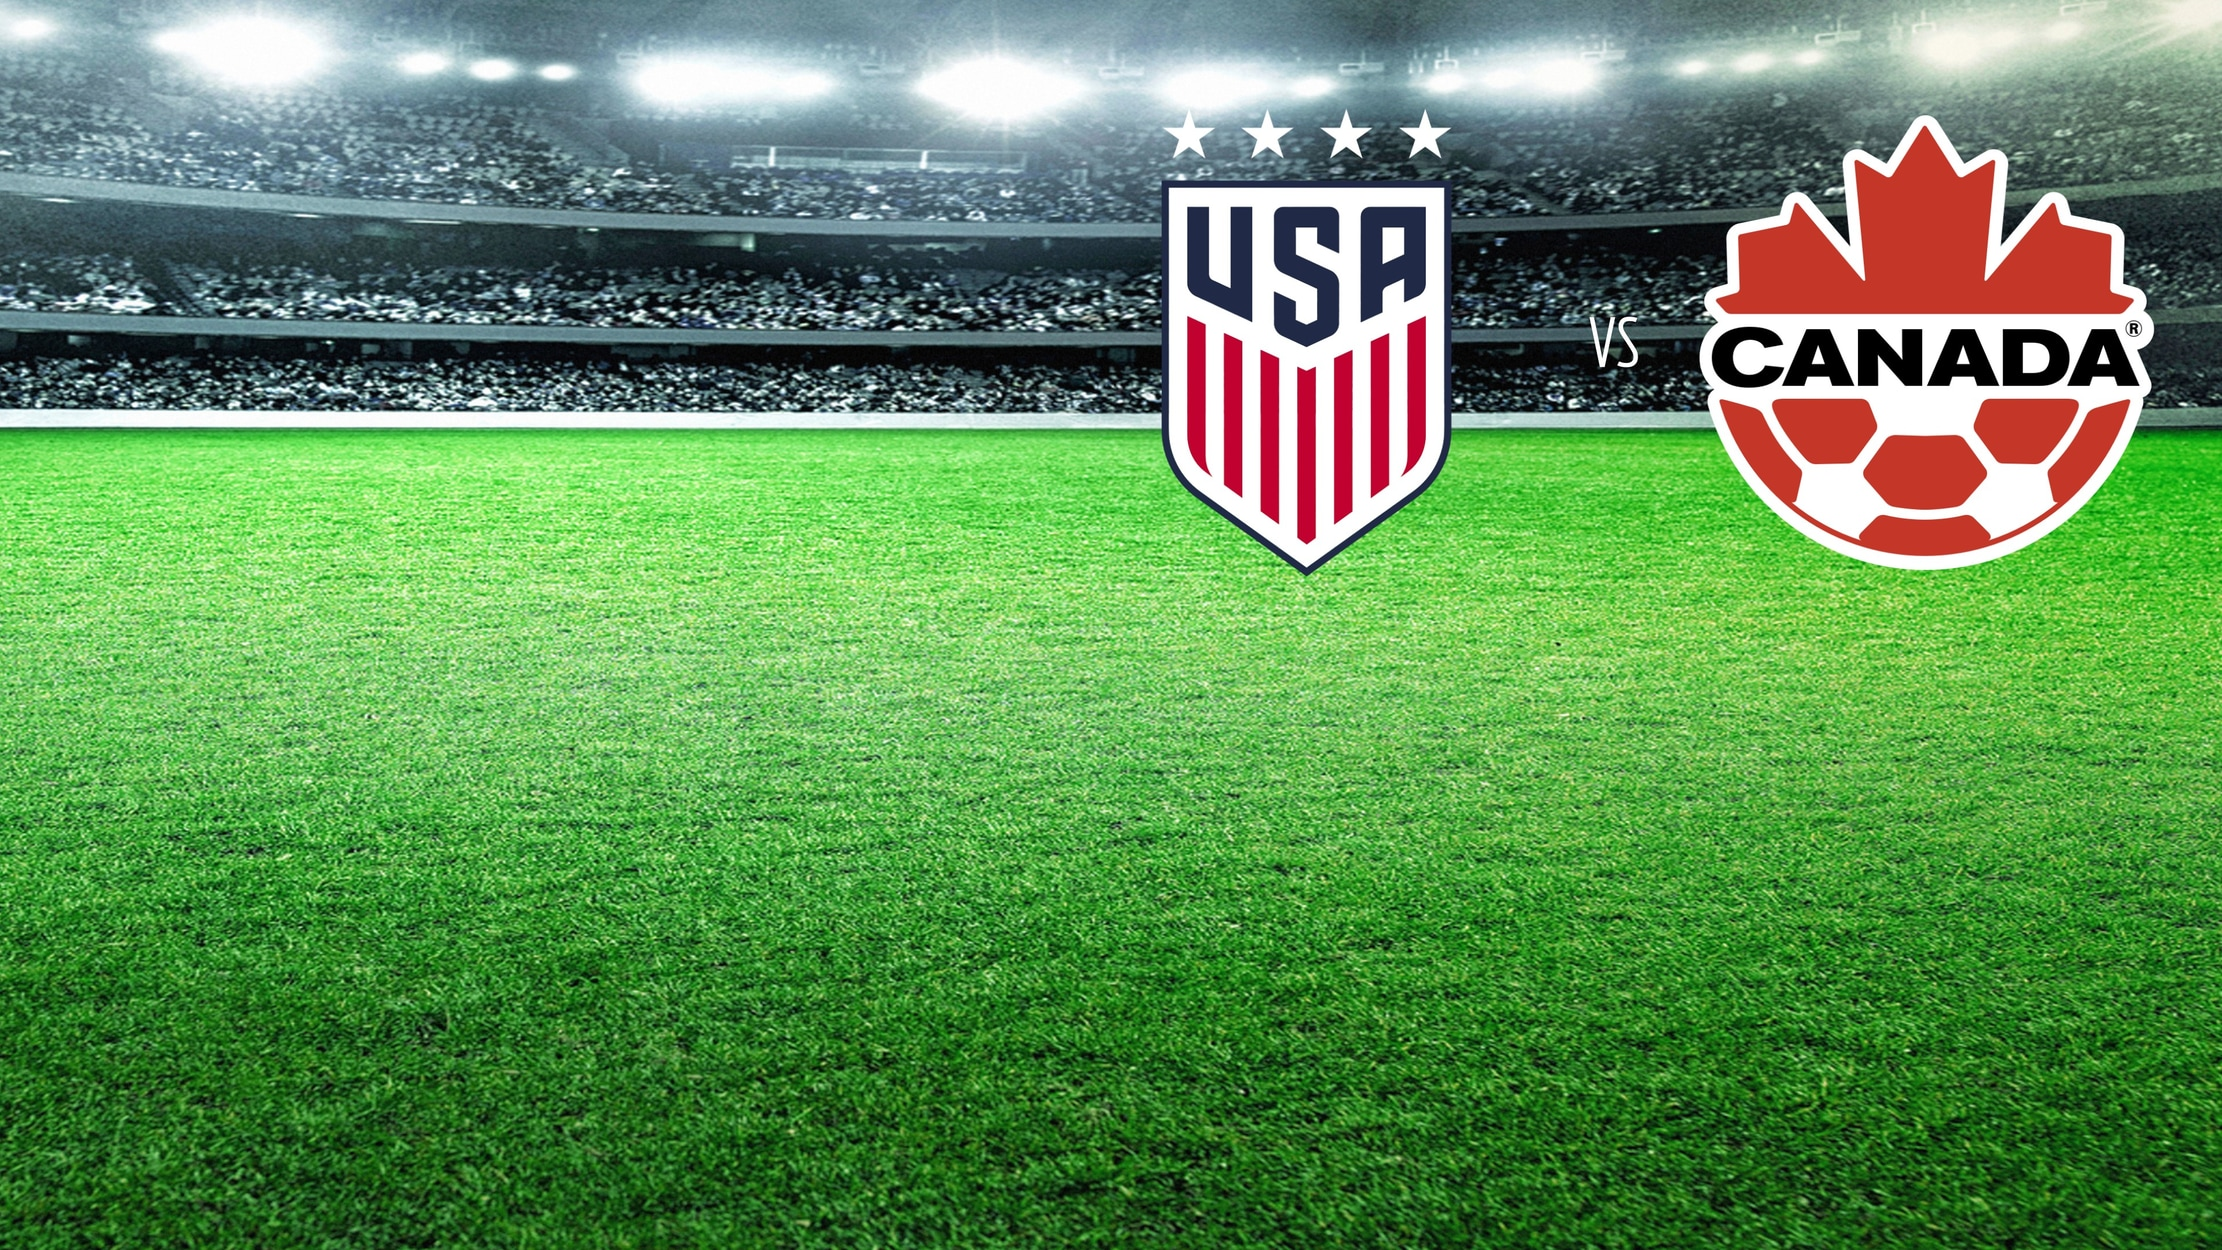 FIFA World Cup 2022 Qualifying - United States vs. Canada seriesDetail